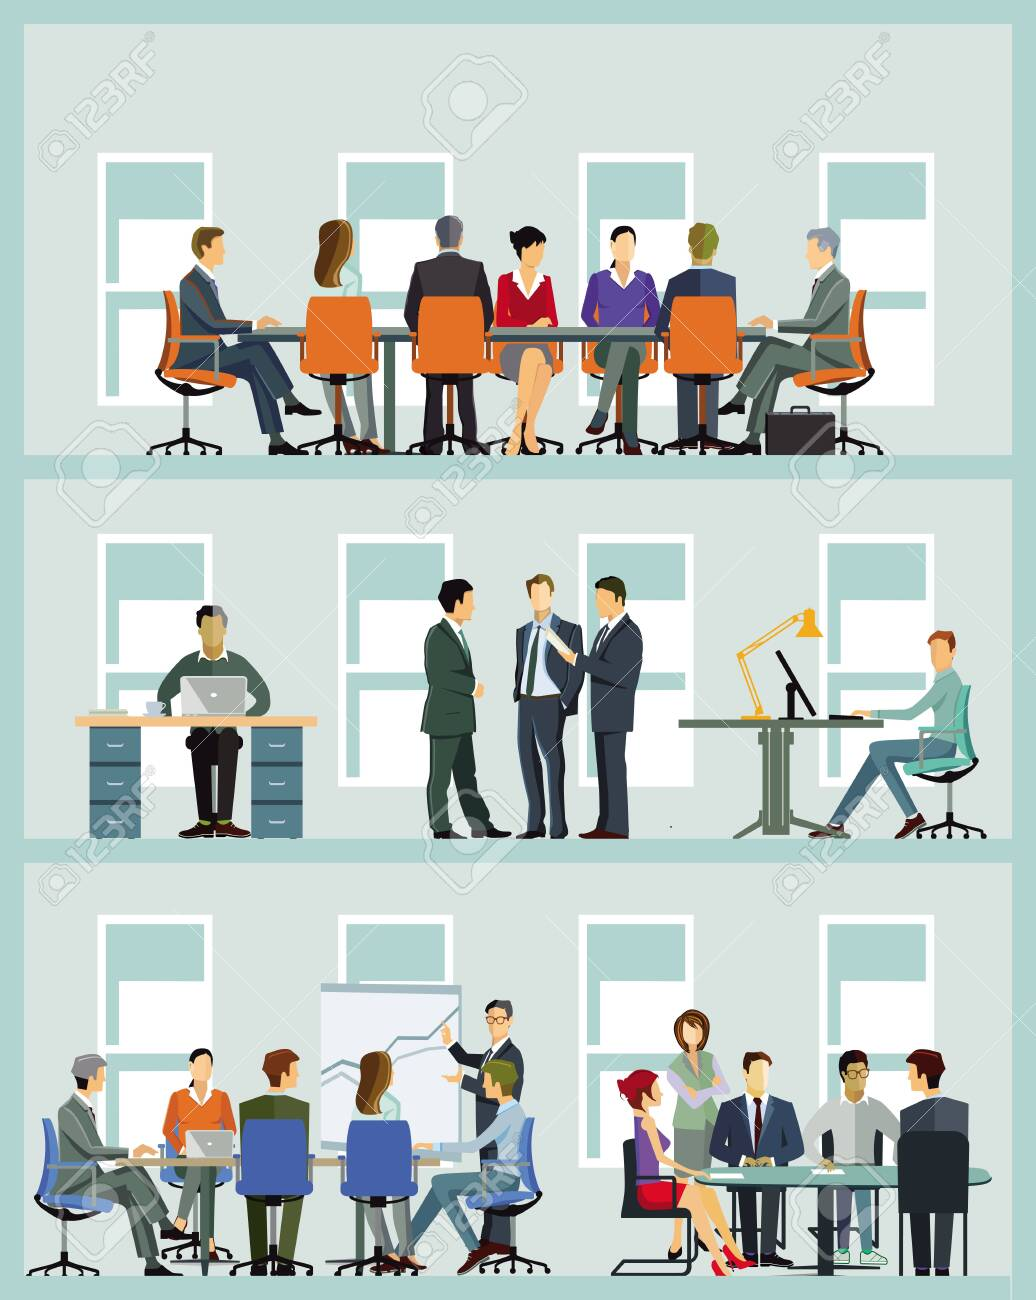 Business team at cooperation - illustration - 132066320